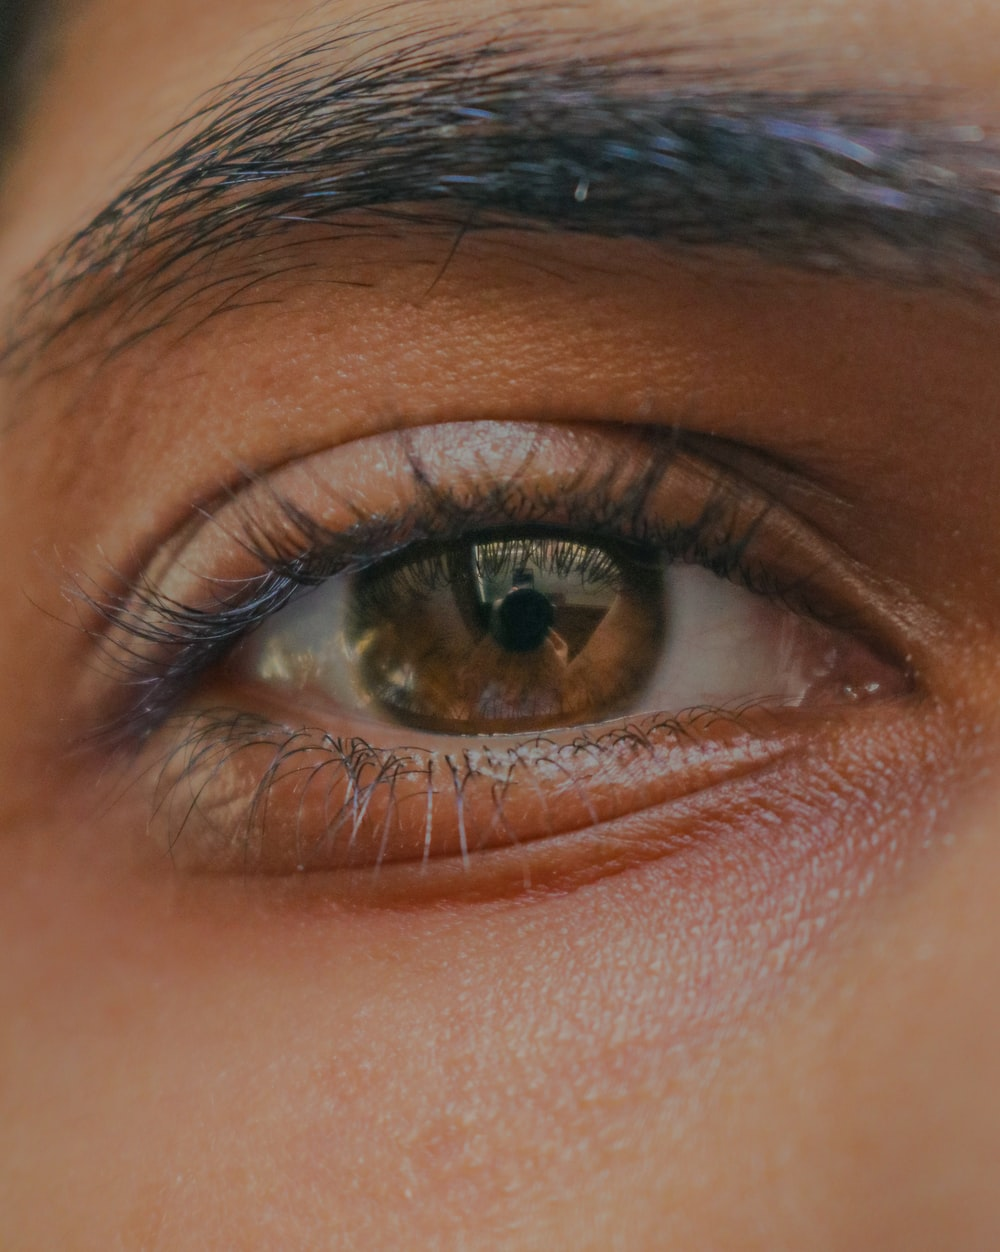 persons eye in close up photography